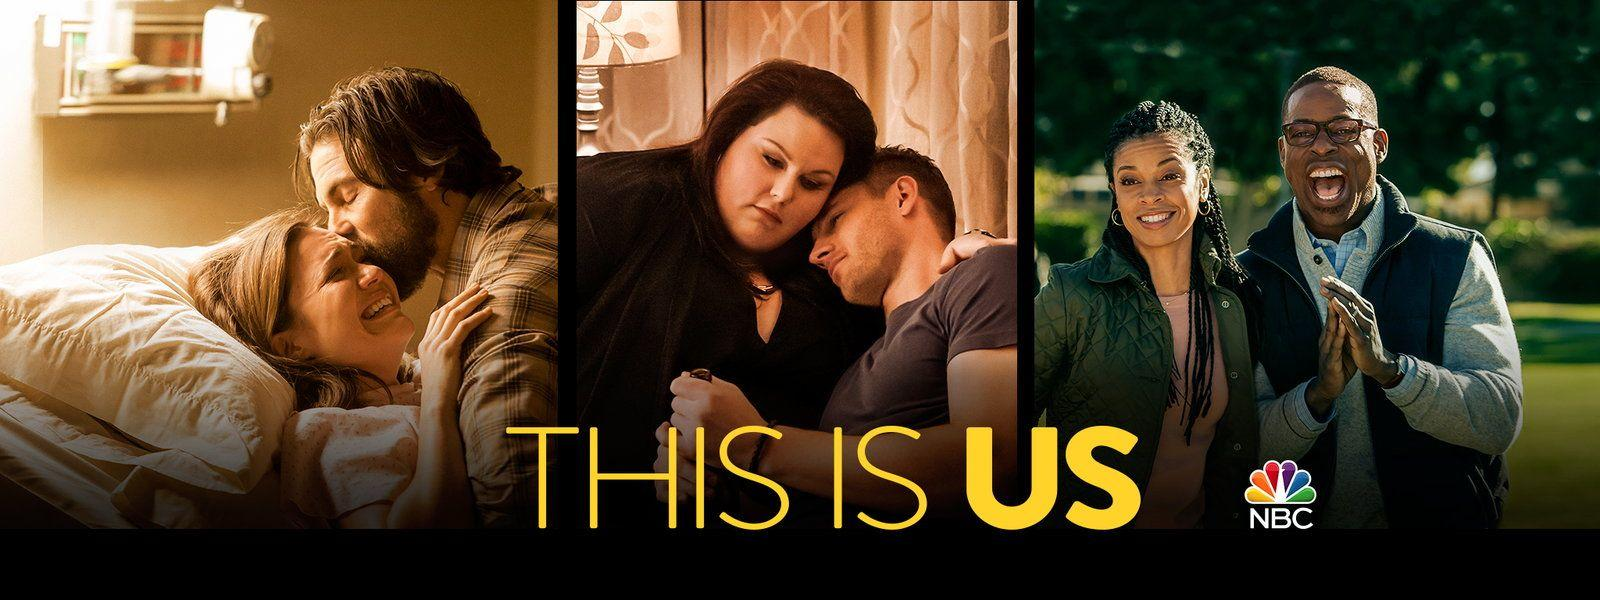 This Is Us wallpapers, TV Show, HQ This Is Us pictures | 4K Wallpapers